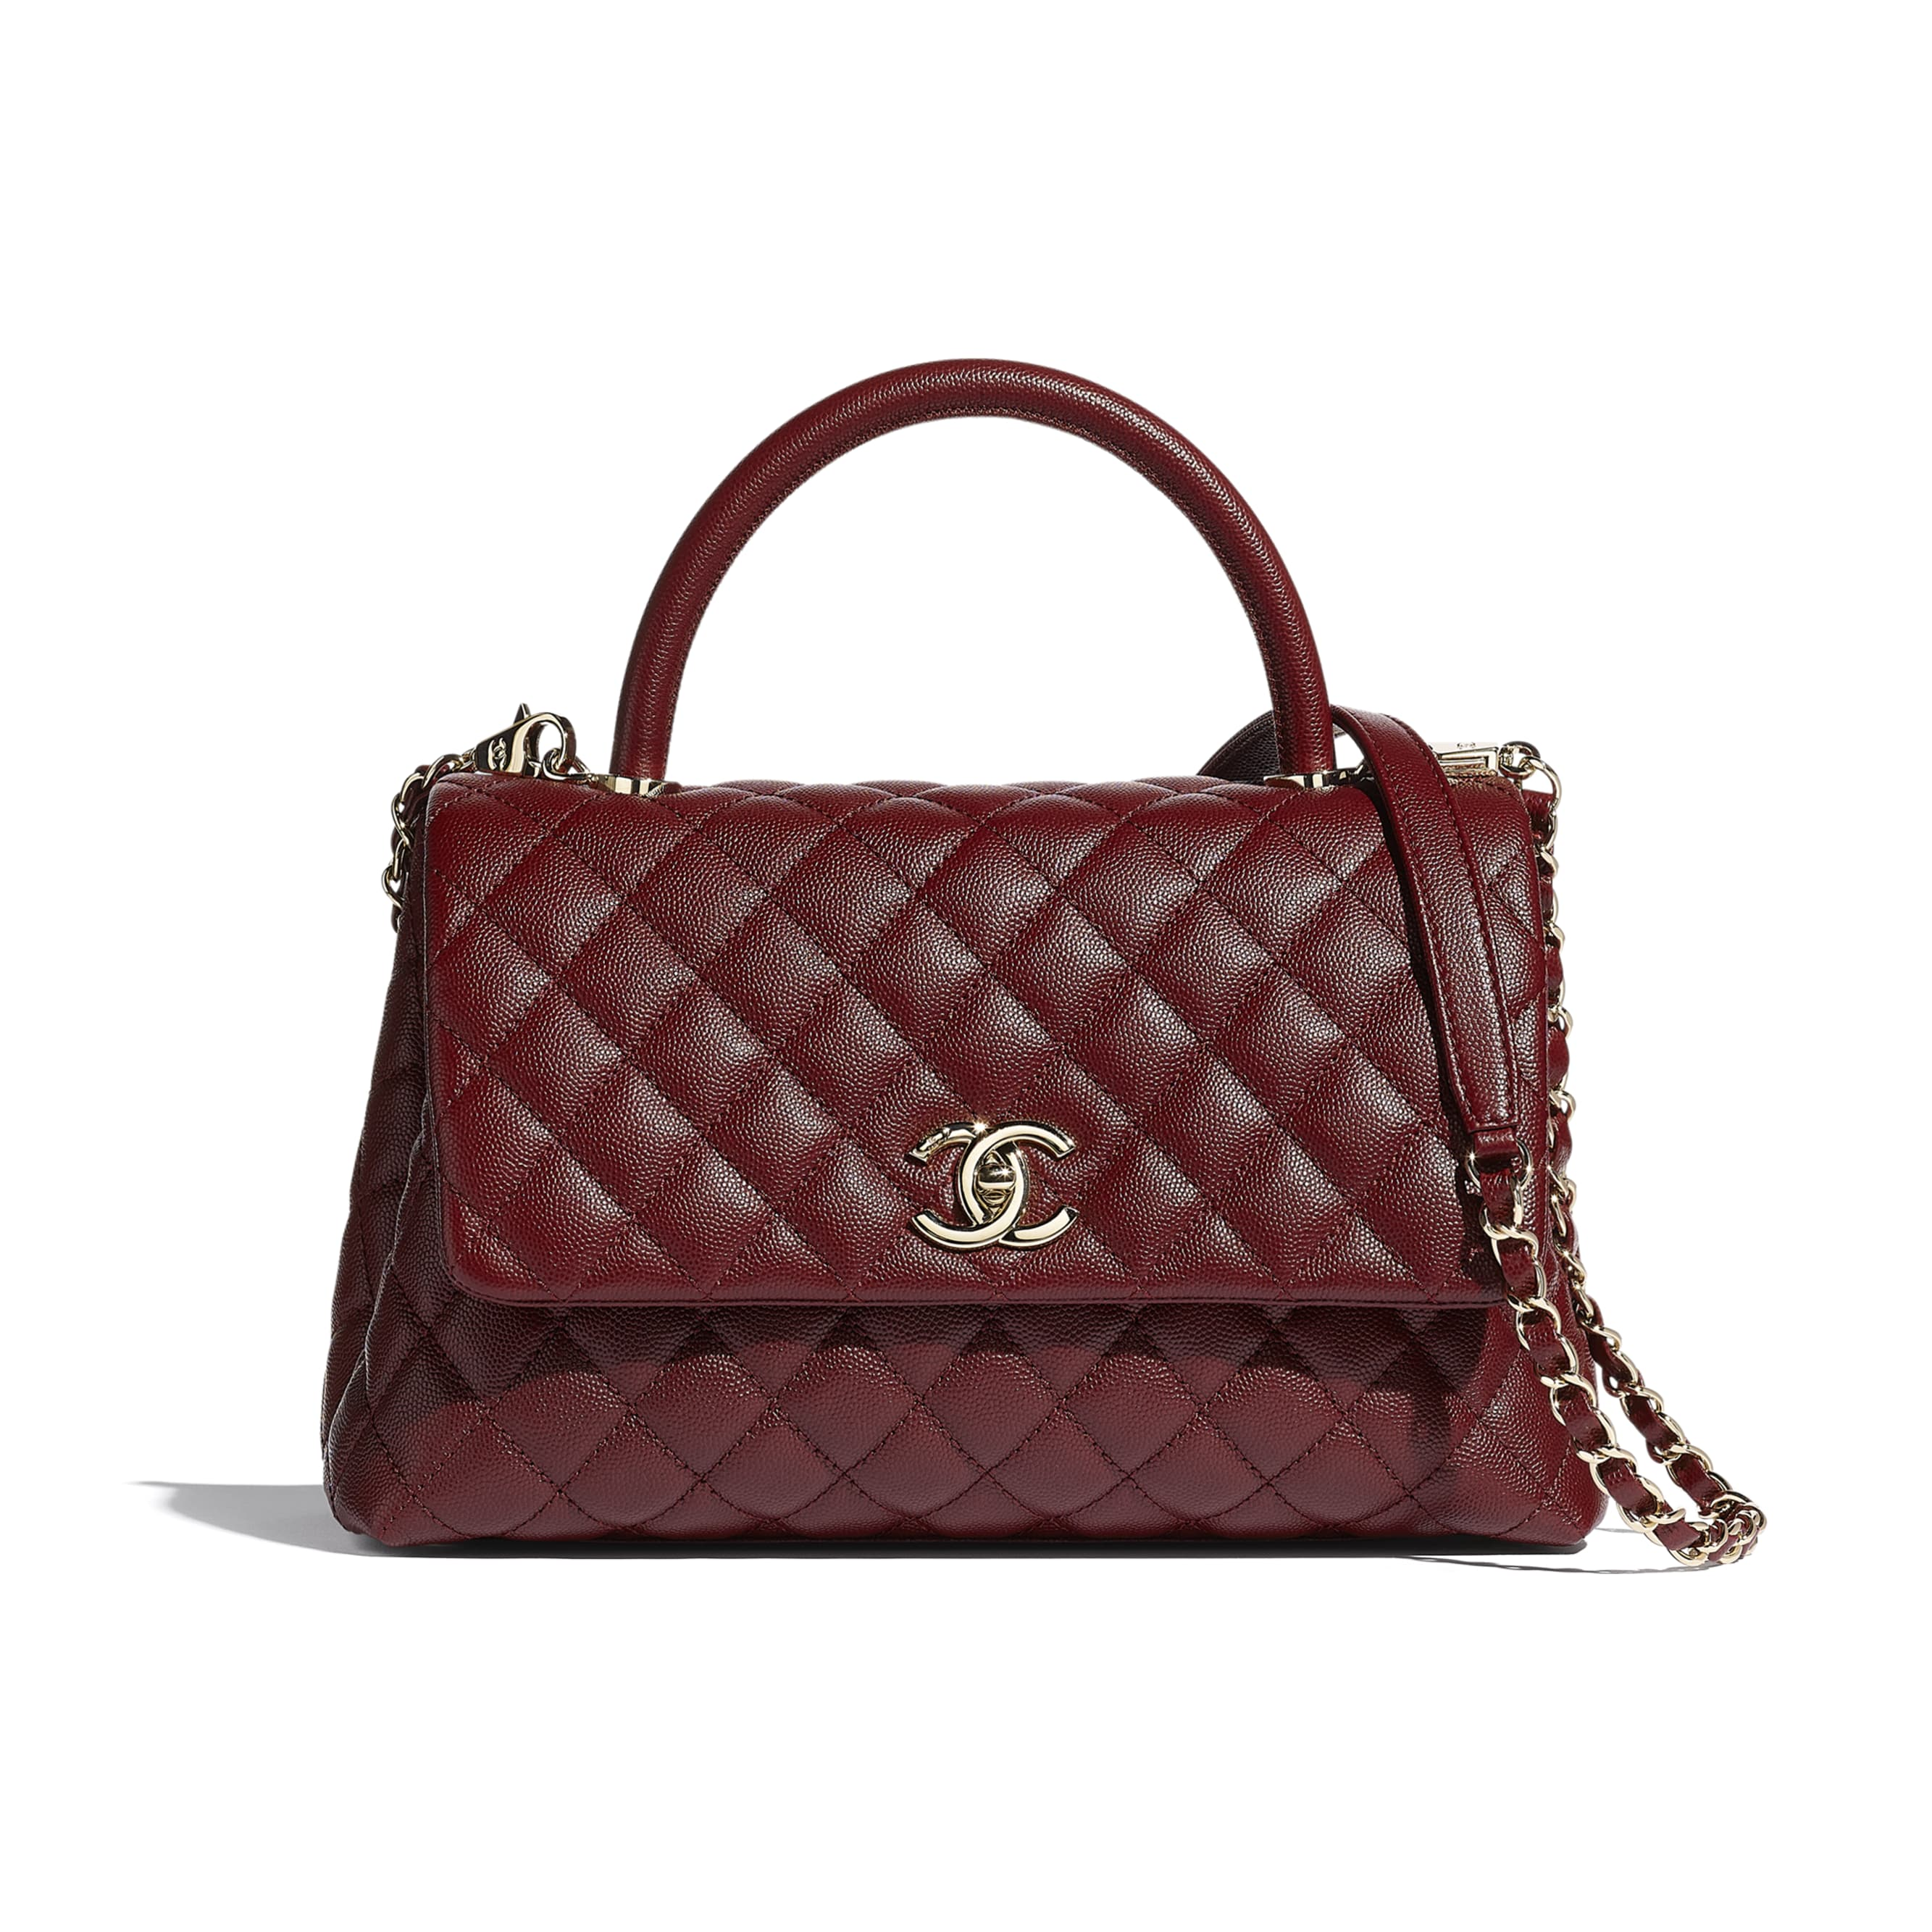 Large Flap Bag With Top Handle - Burgundy - Grained Calfskin & Gold-Tone Metal - CHANEL - Default view - see standard sized version